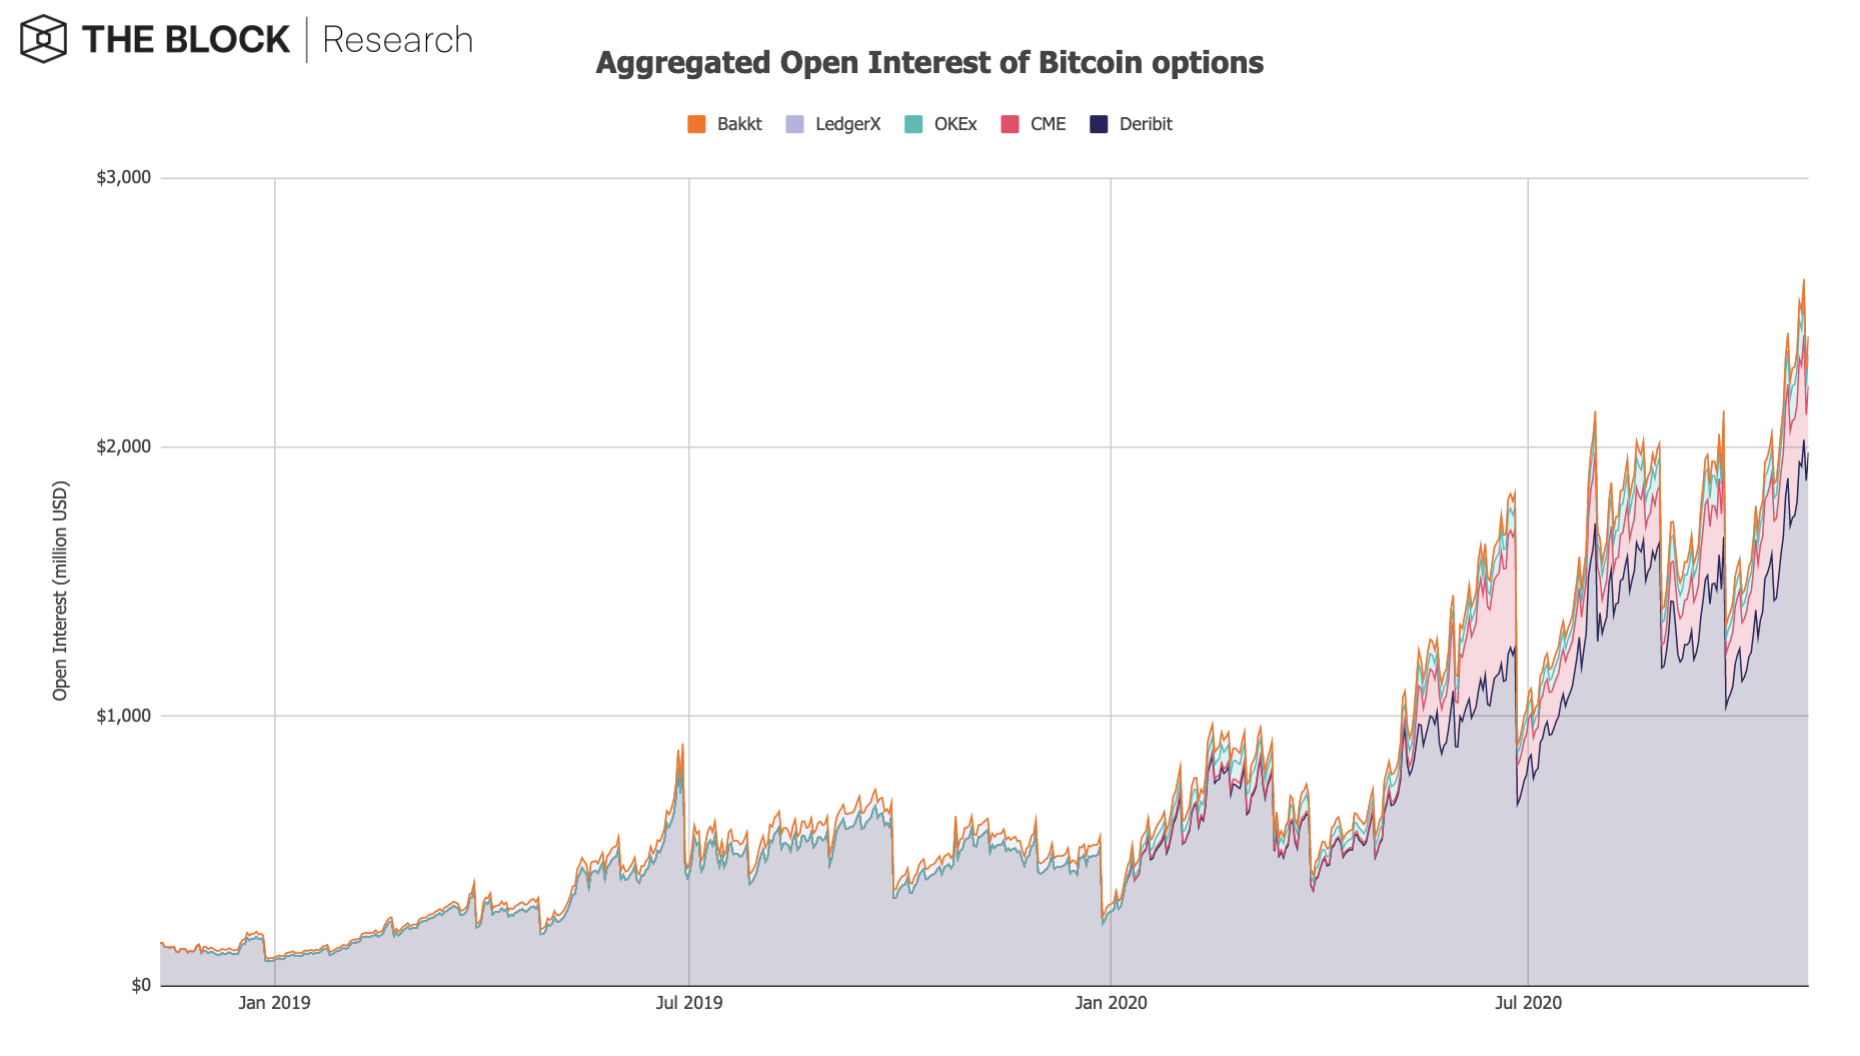 Aggregated Open Interest of Bitcoin options